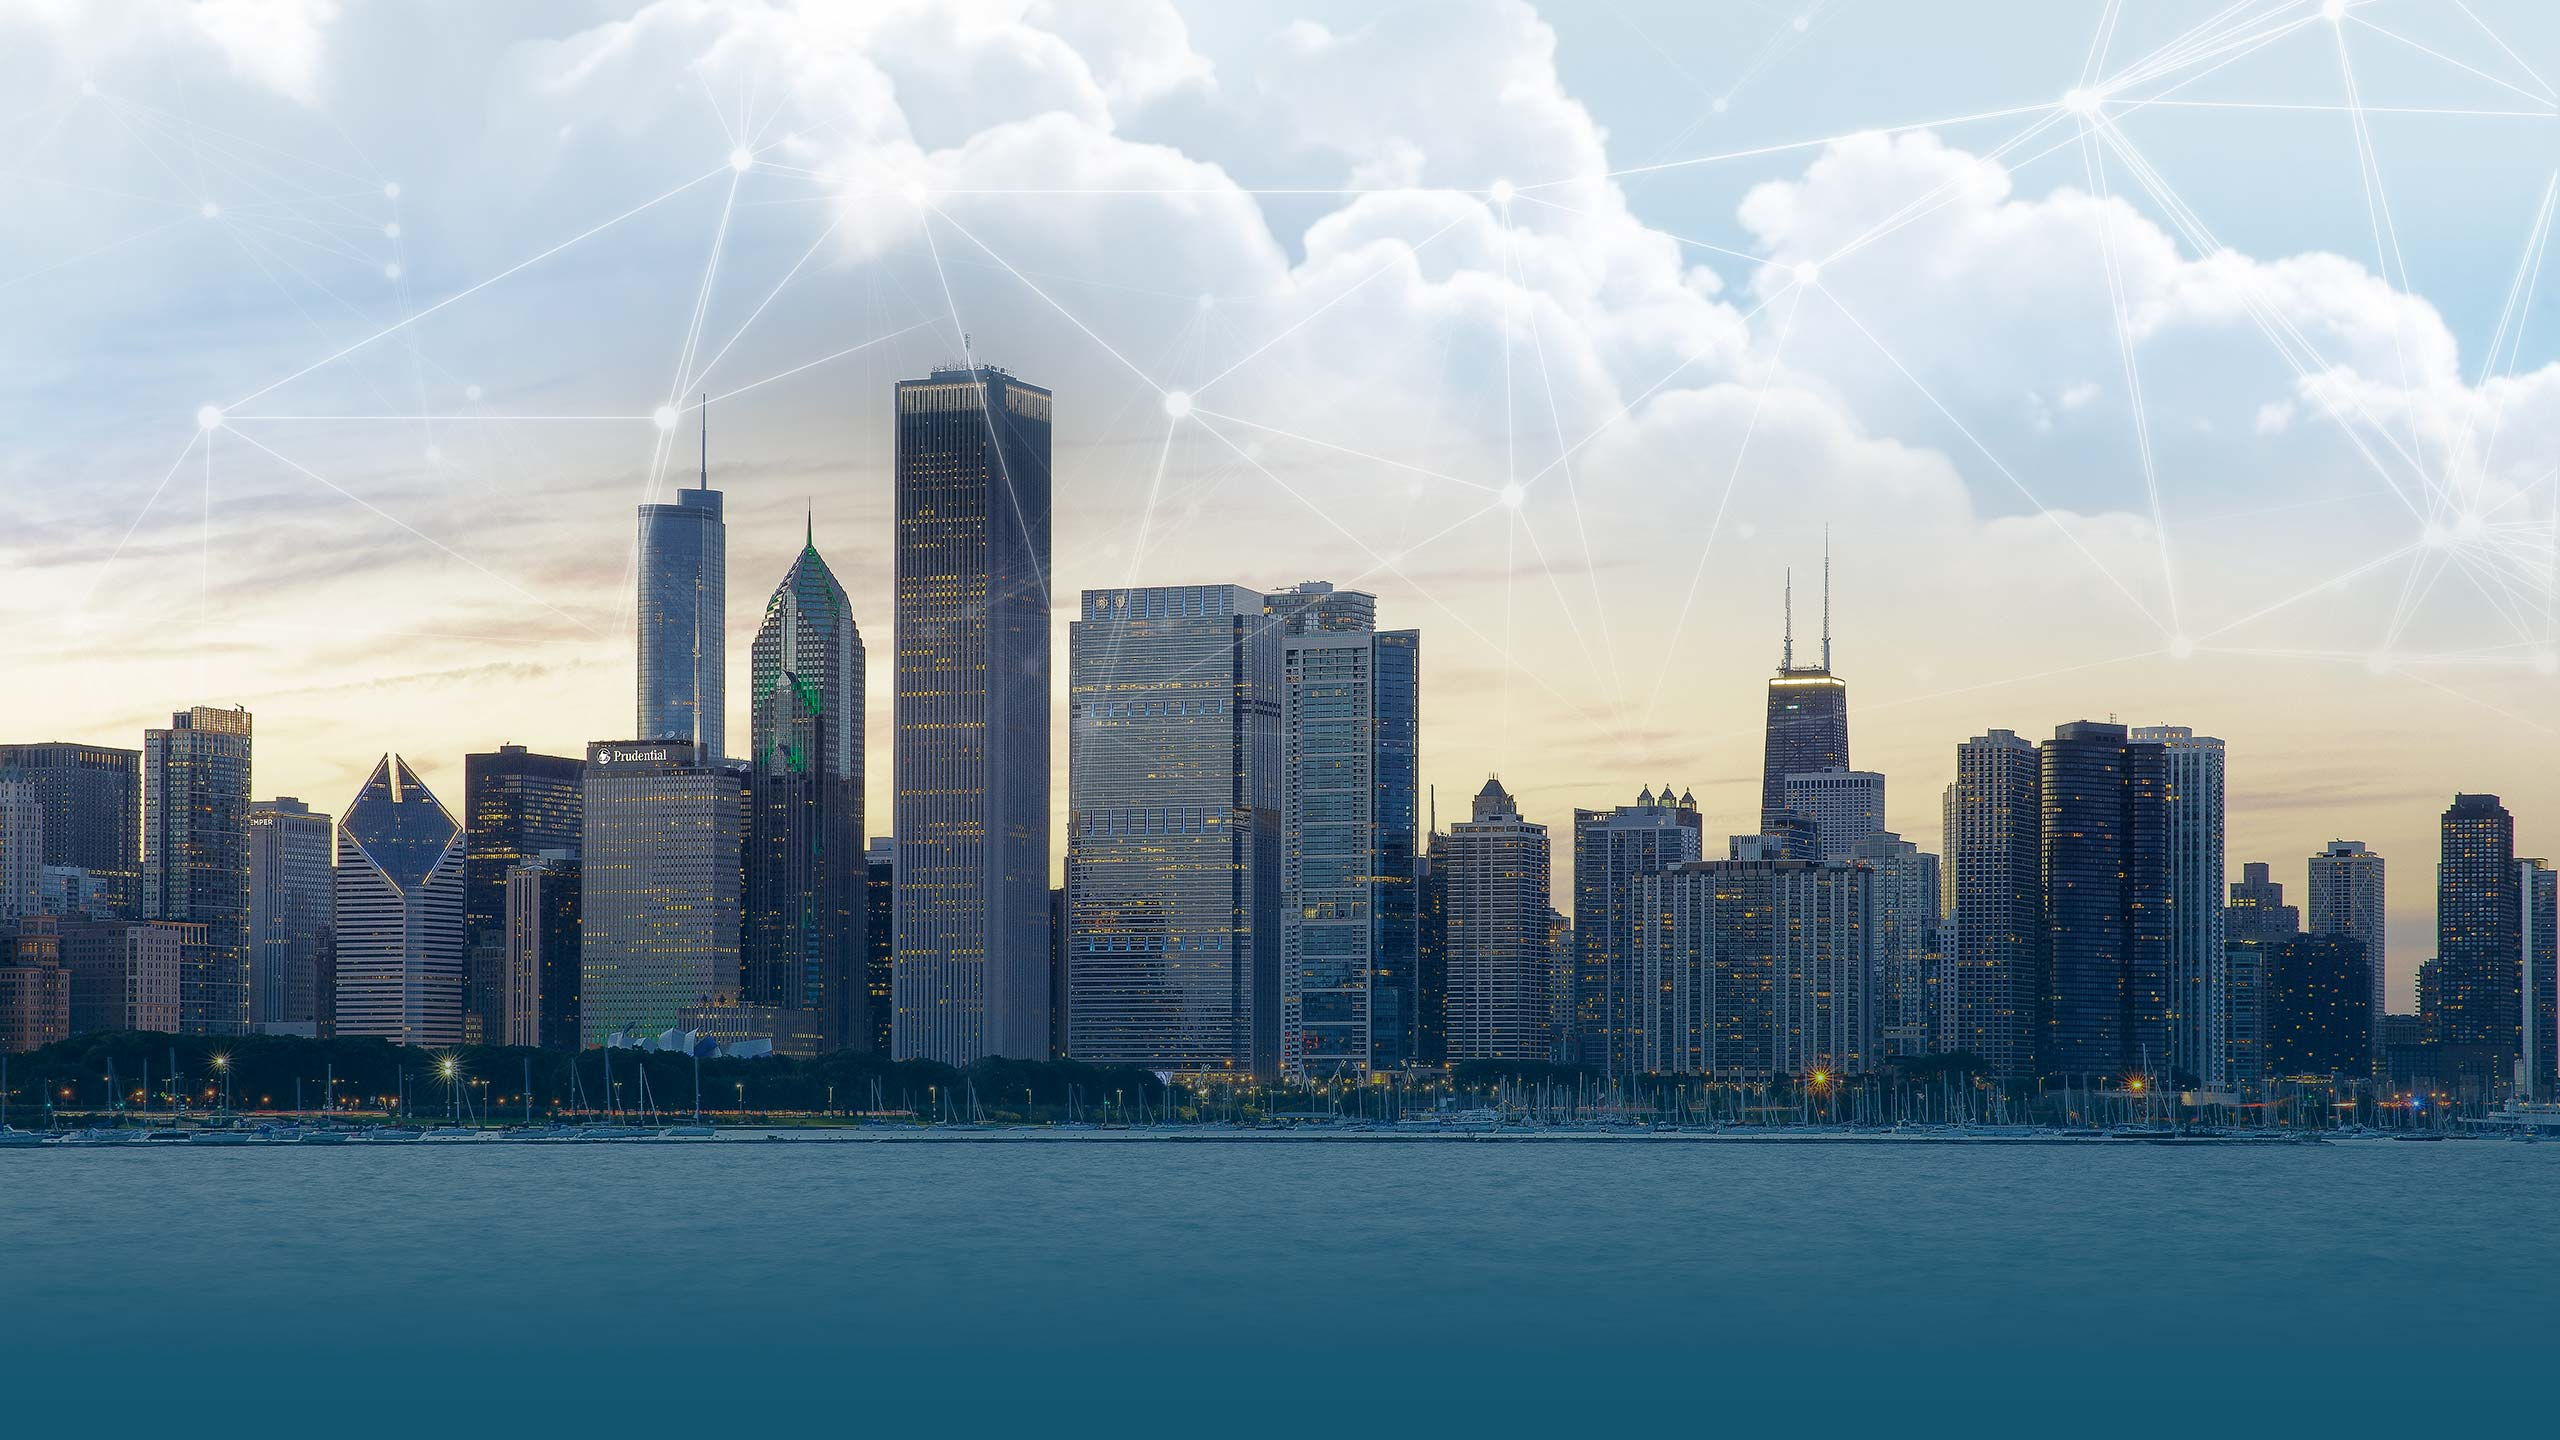 Fgs Security chicago's leader in voip, unified communications and sd-wan